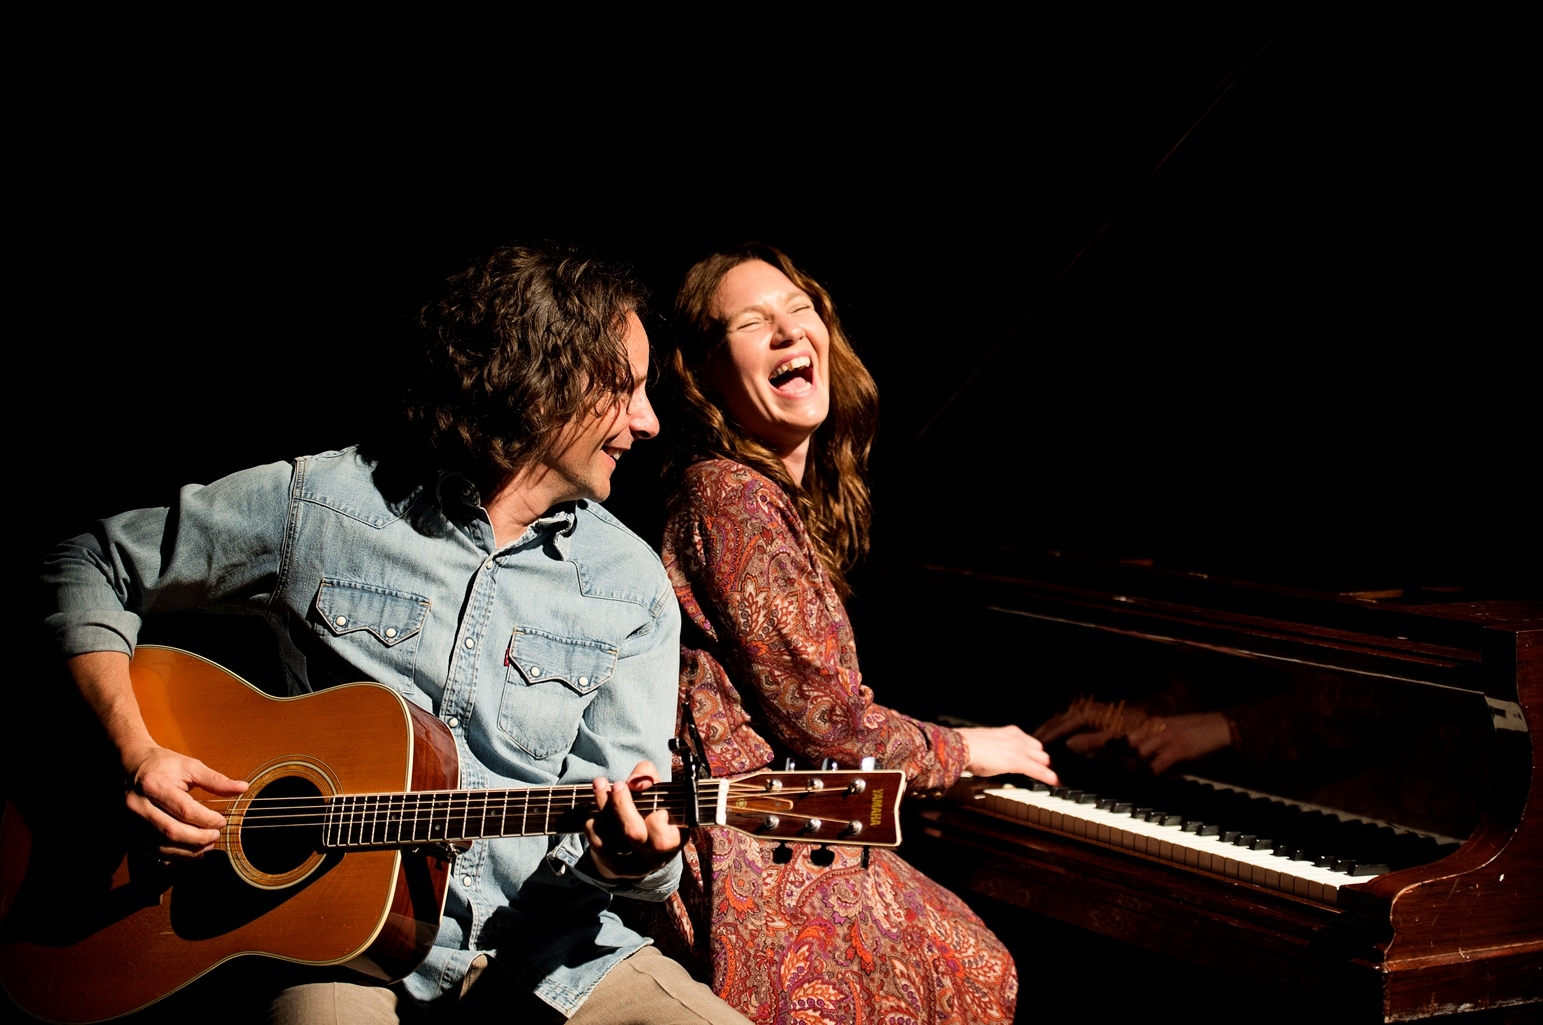 Kyla Brown stars as Carole King and Bill Lennon is James Taylor